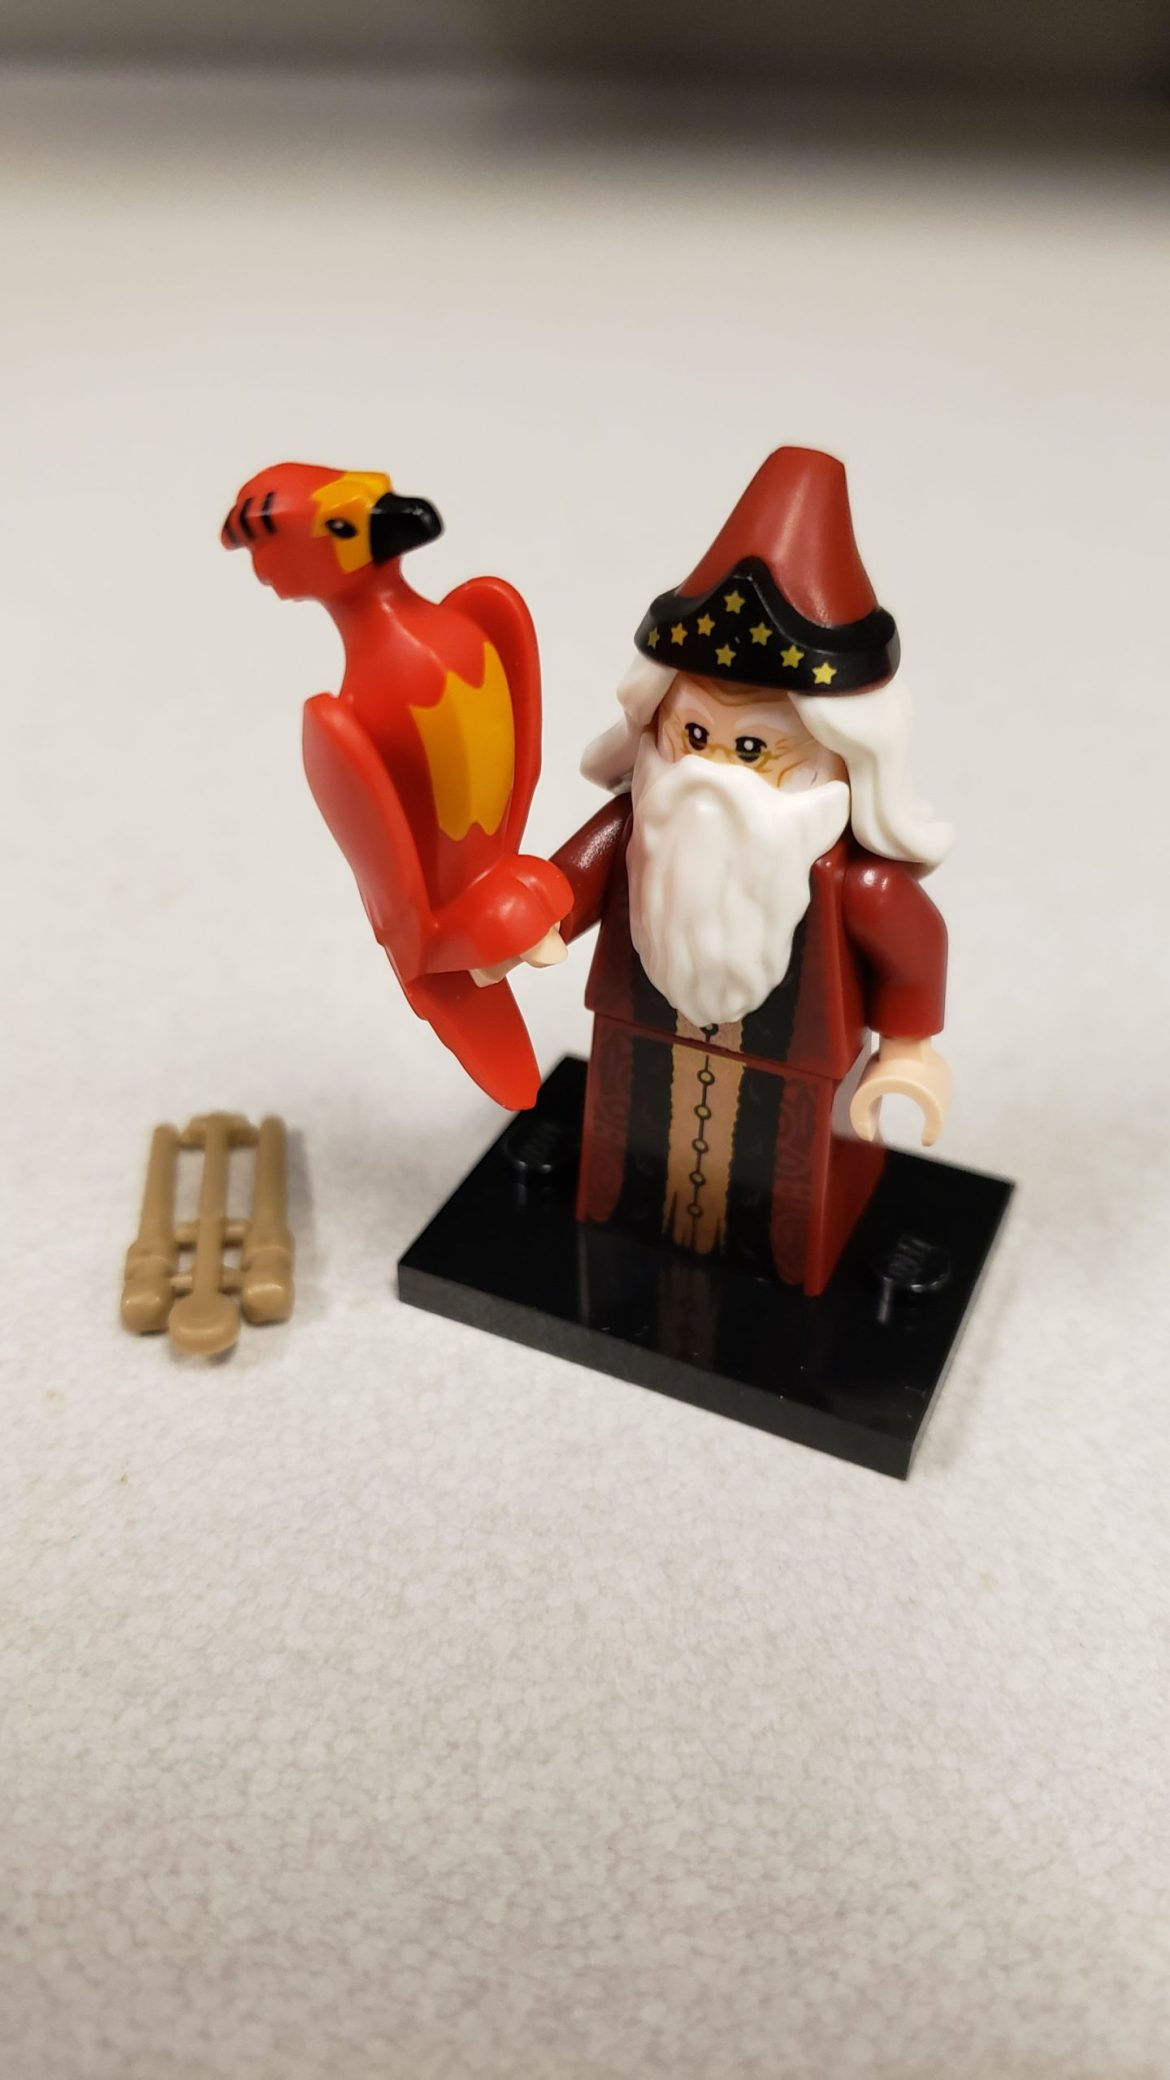 Lego Harry Potter Minifigures Series 2 Mini Review (Favorite Characters)